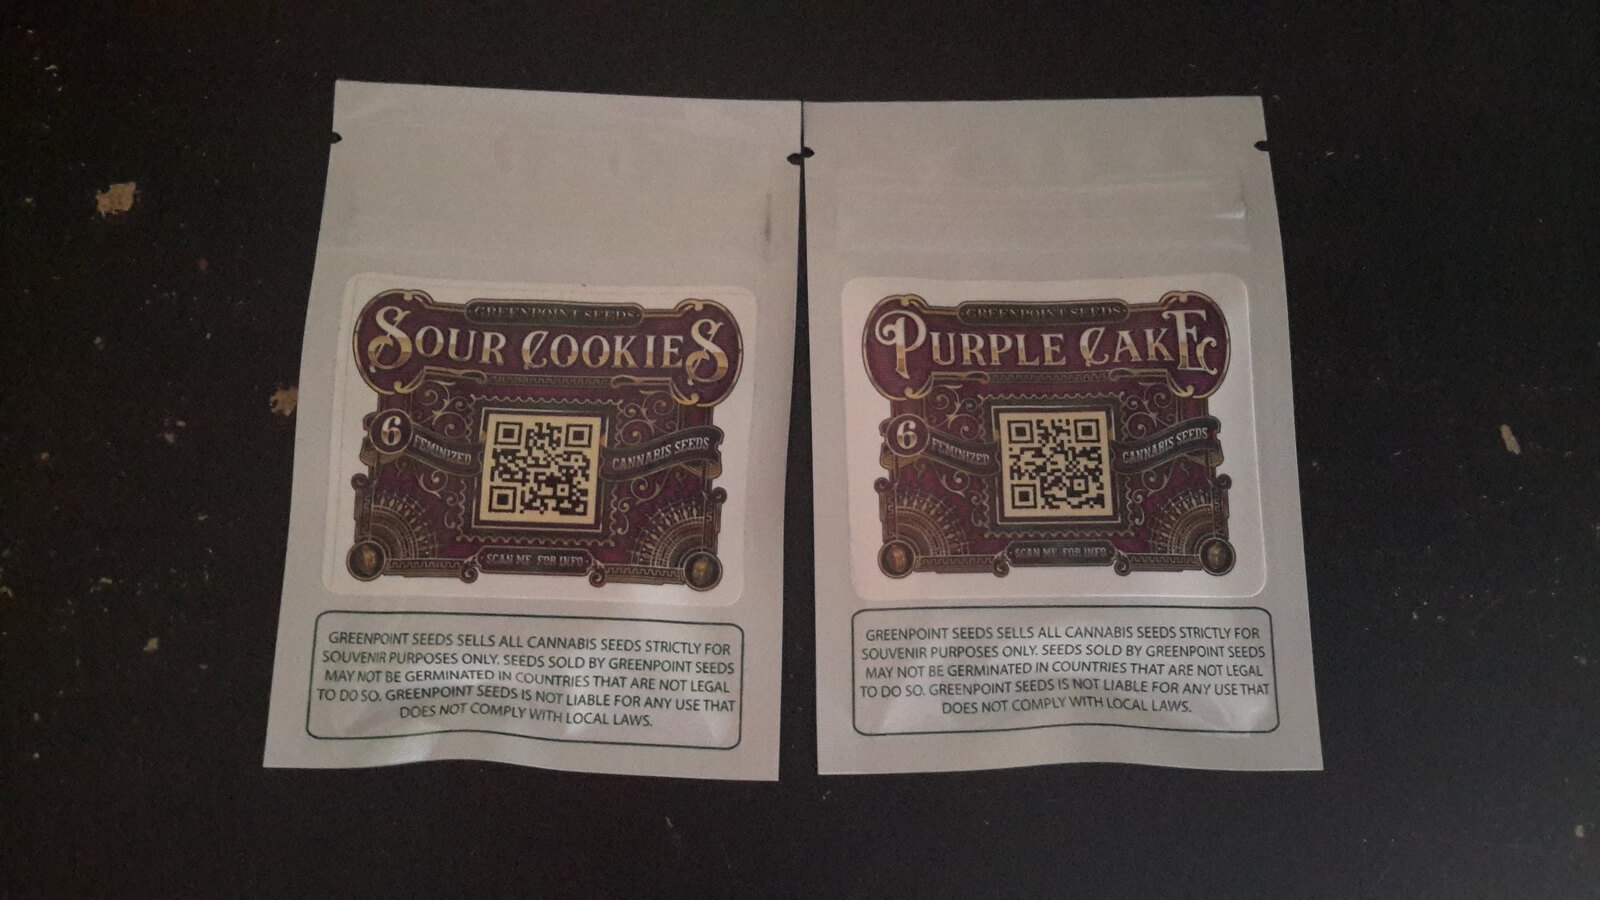 Greenpoint Seeds packs